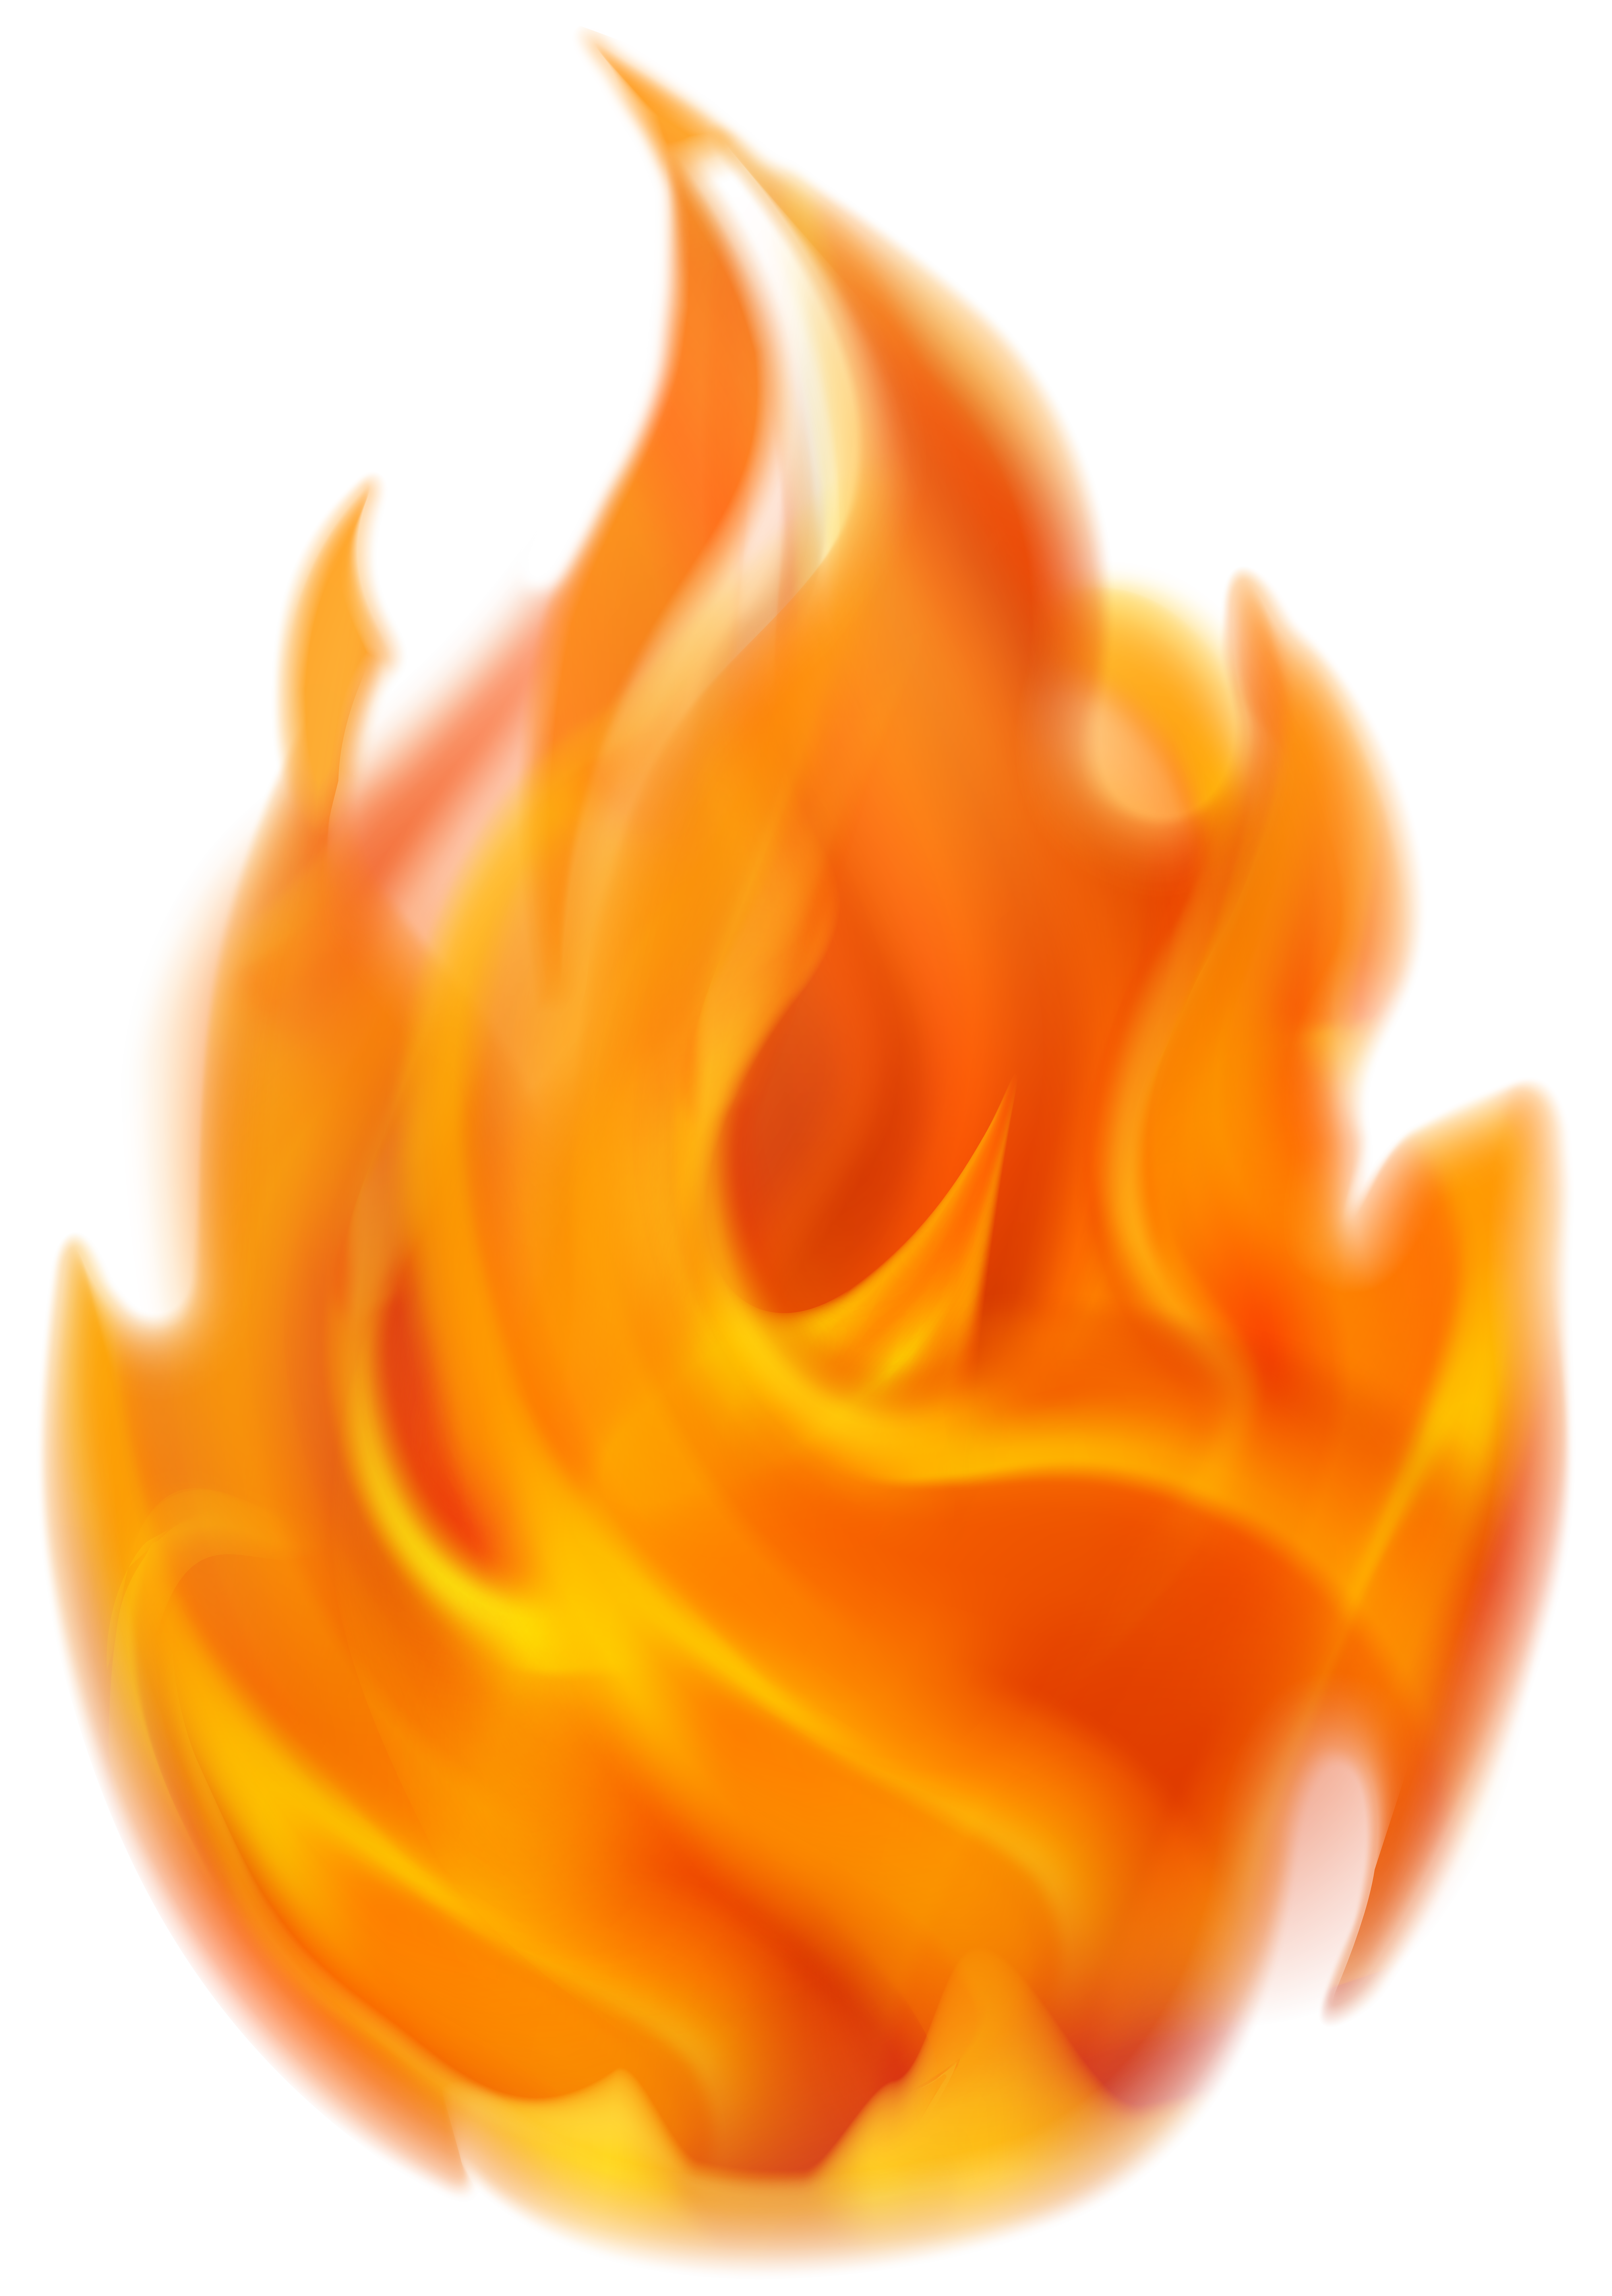 Fire Png Clip Art Gallery Yopriceville High Quality Images And Transparent Png Free Clipart Clip Art Free Clip Art Fire